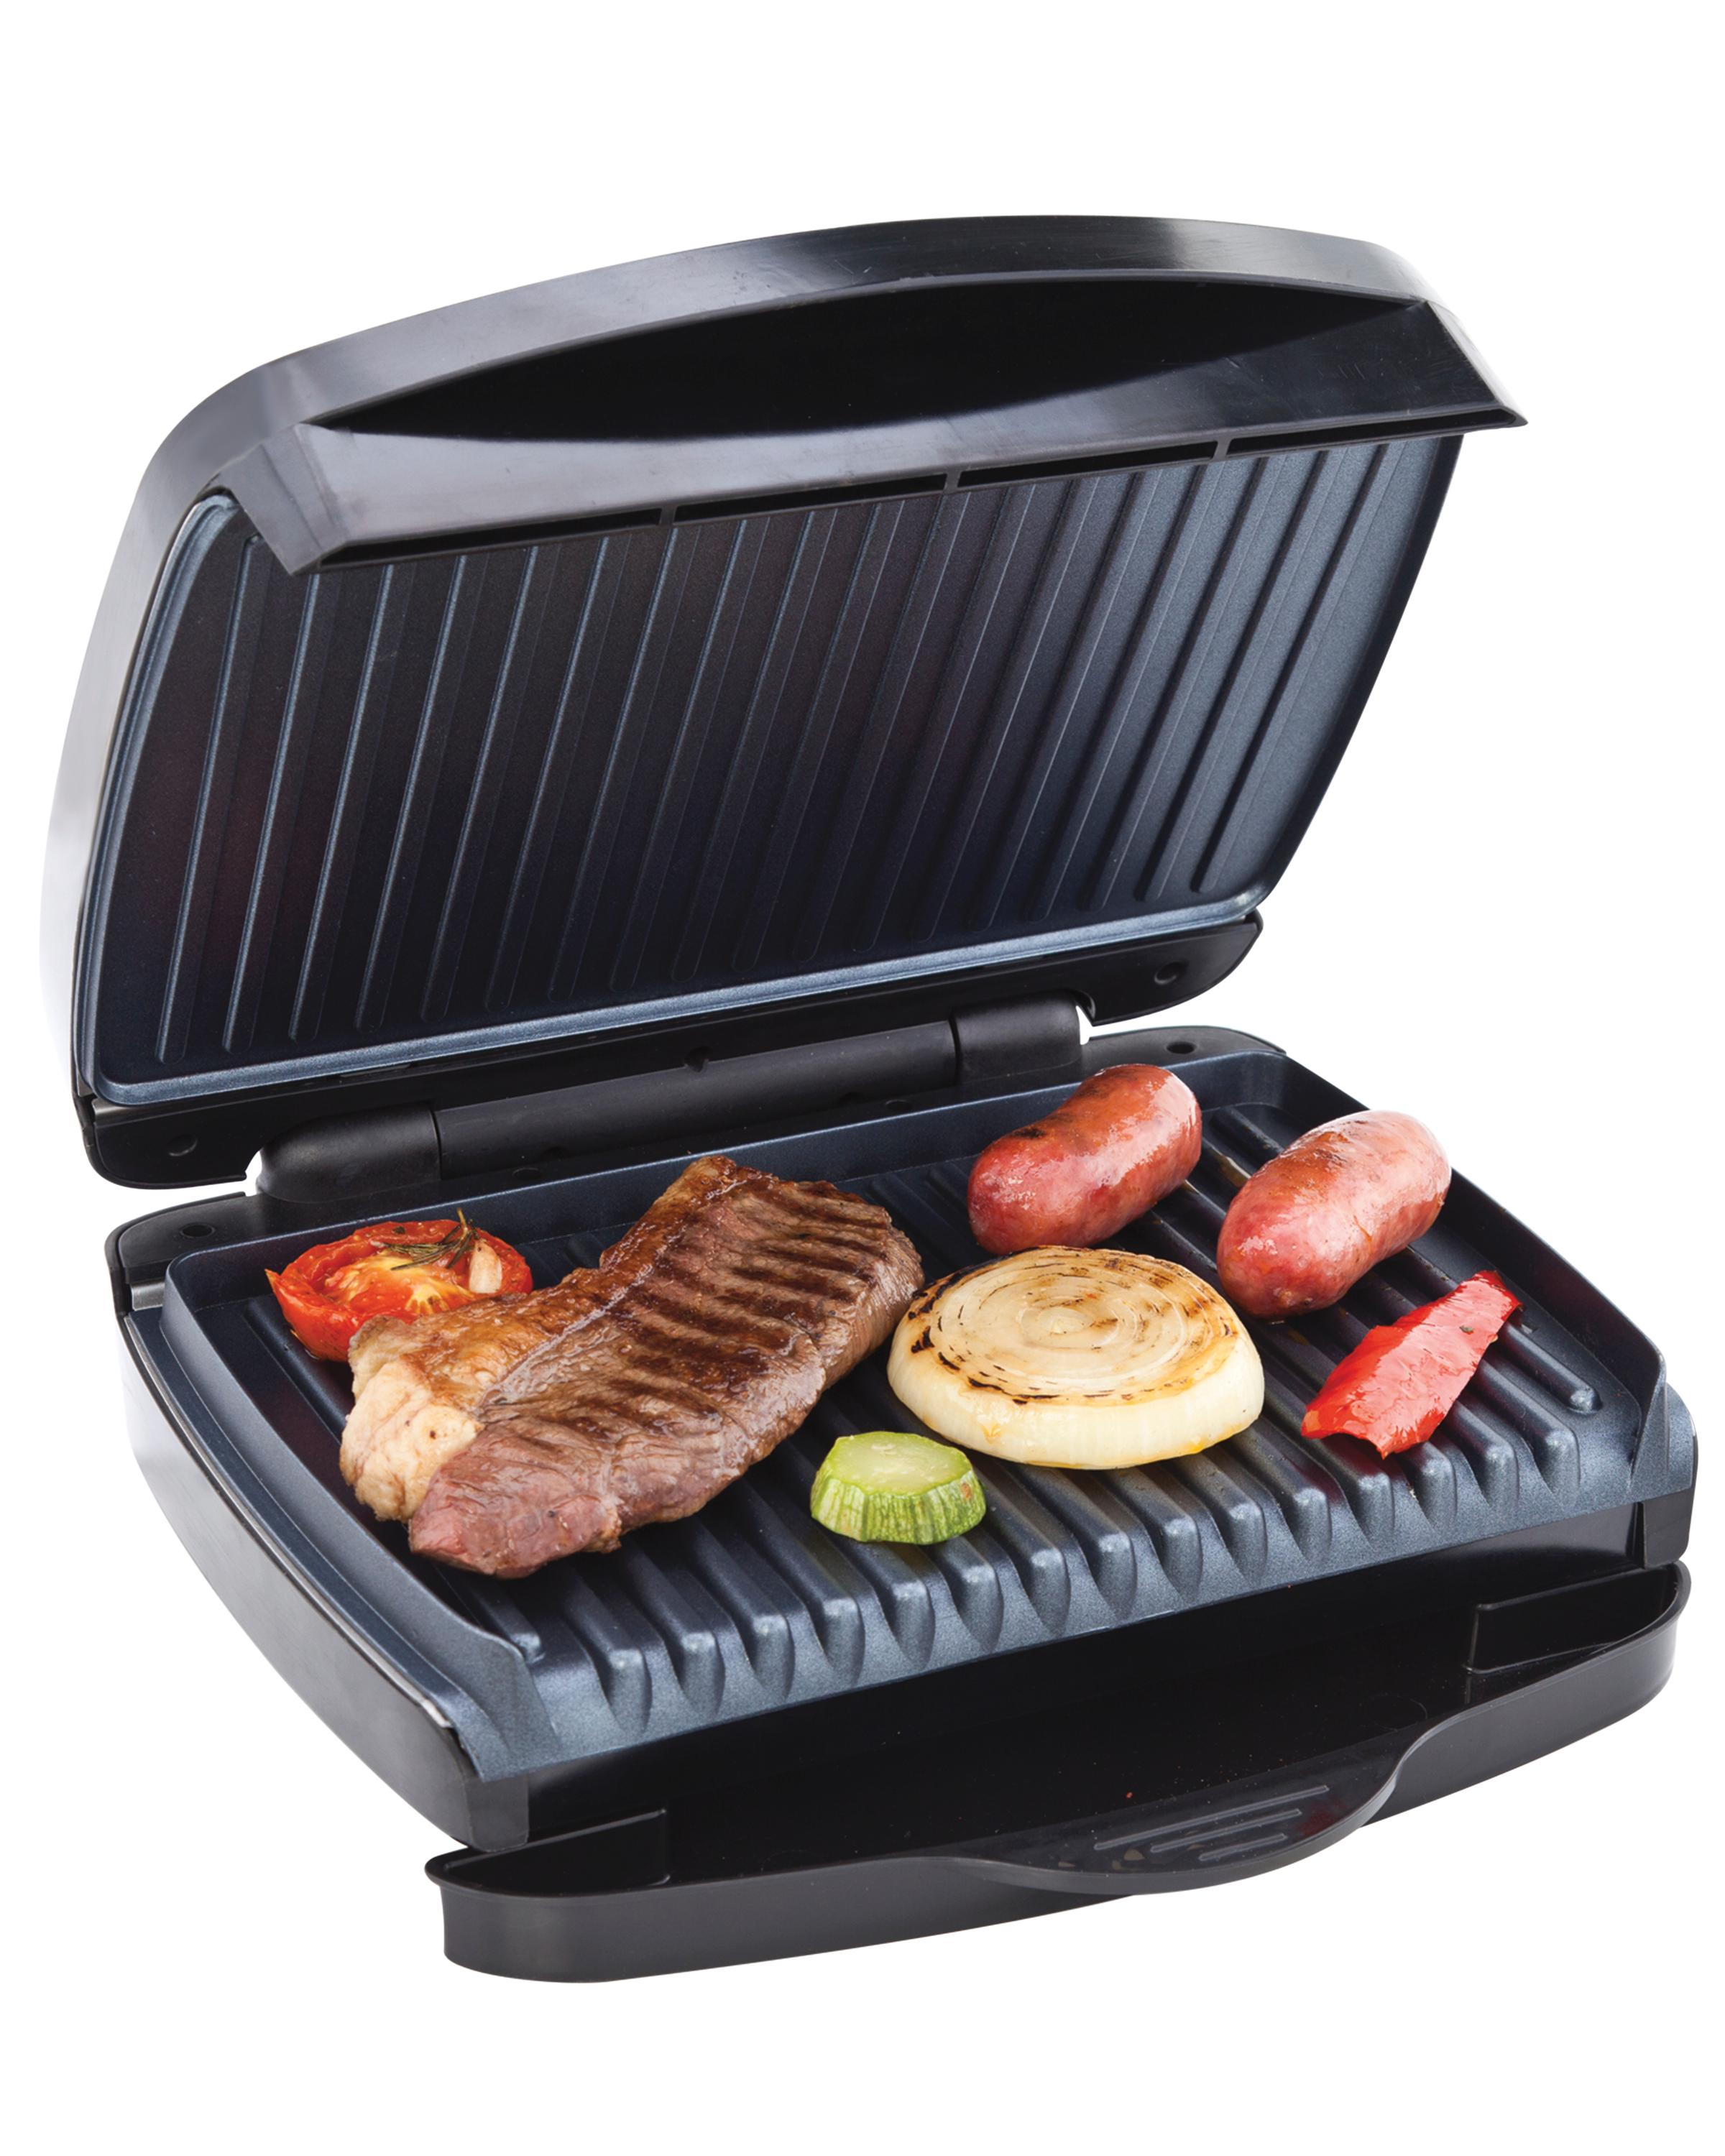 Panini Press Indoor Griddle Maker Cuisinart George Electric Foreman  Countertop Best